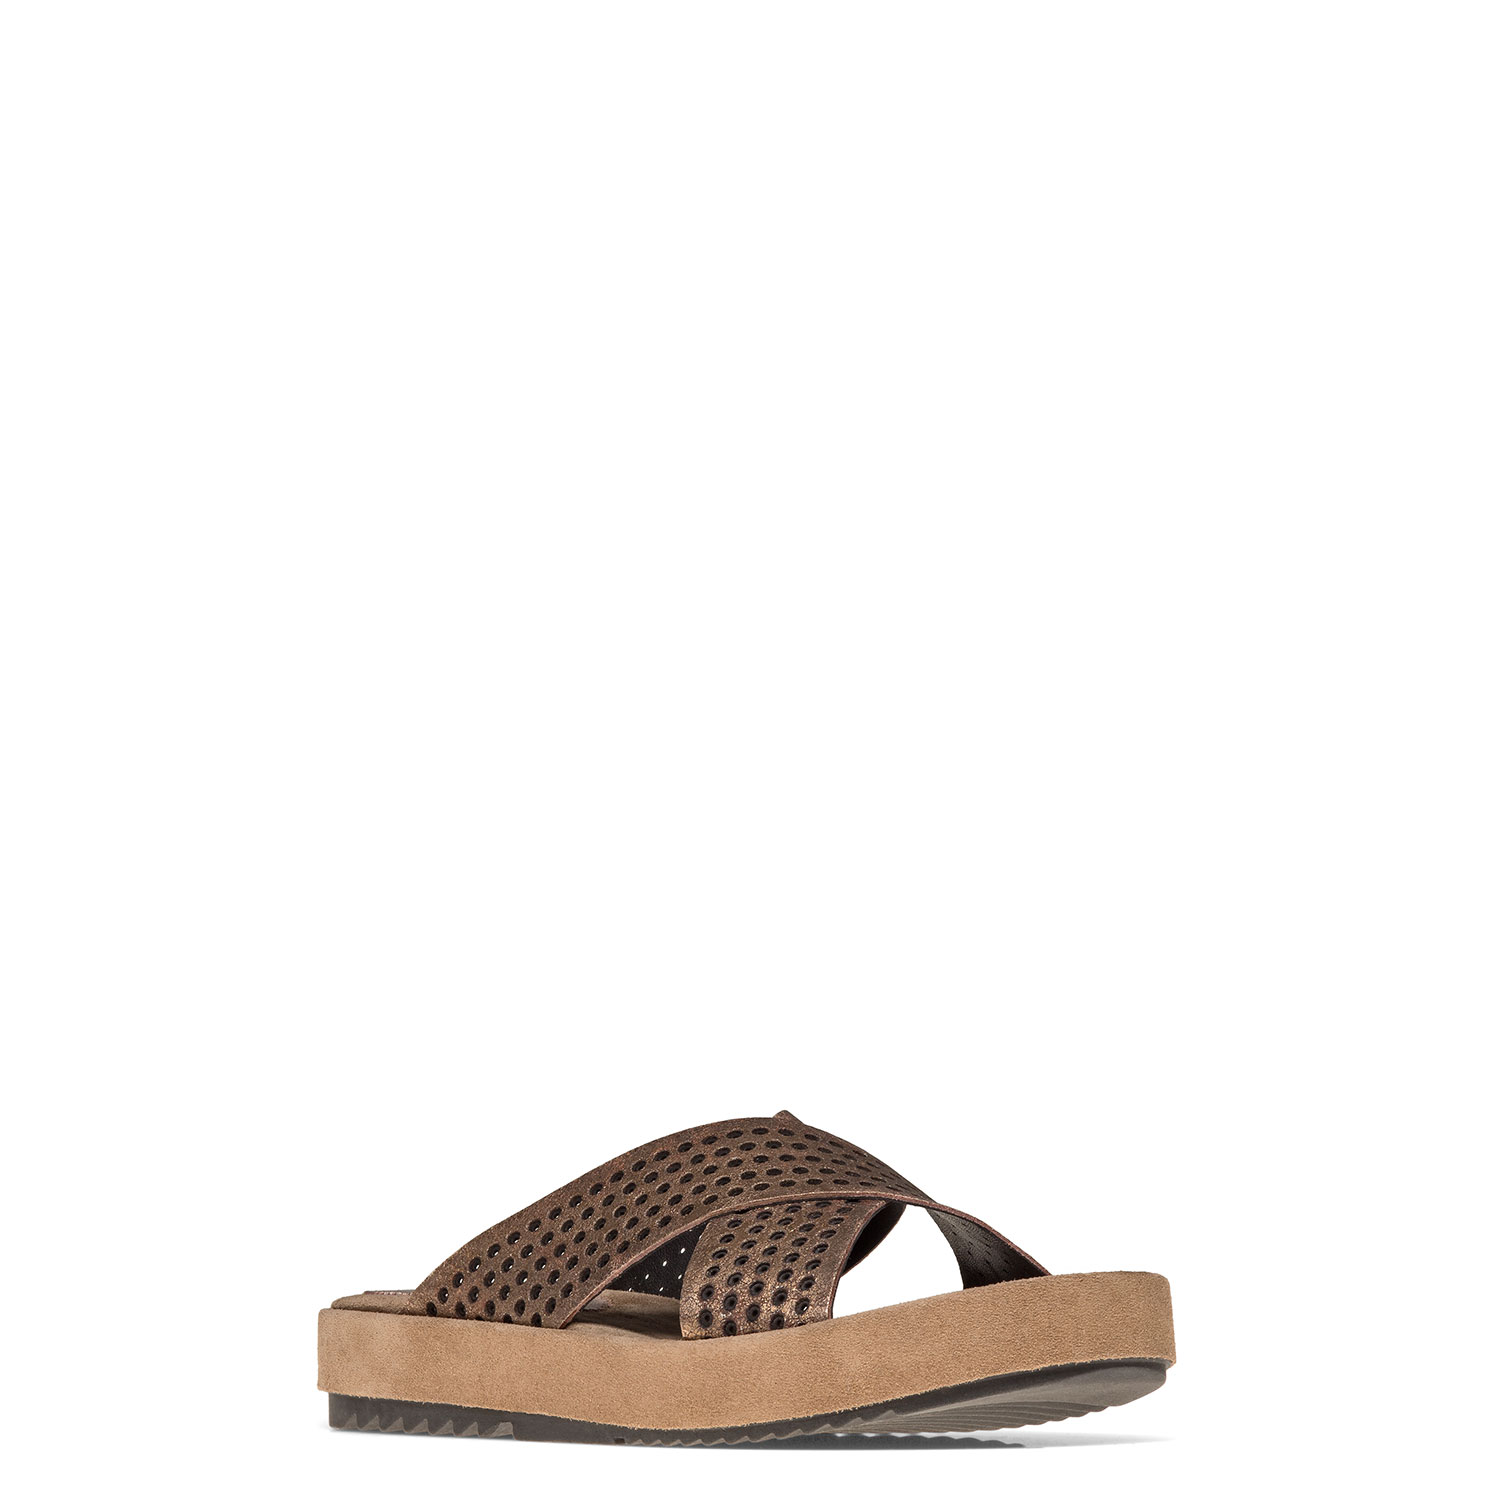 Women's sandals CARLO PAZOLINI TO-X2764-9